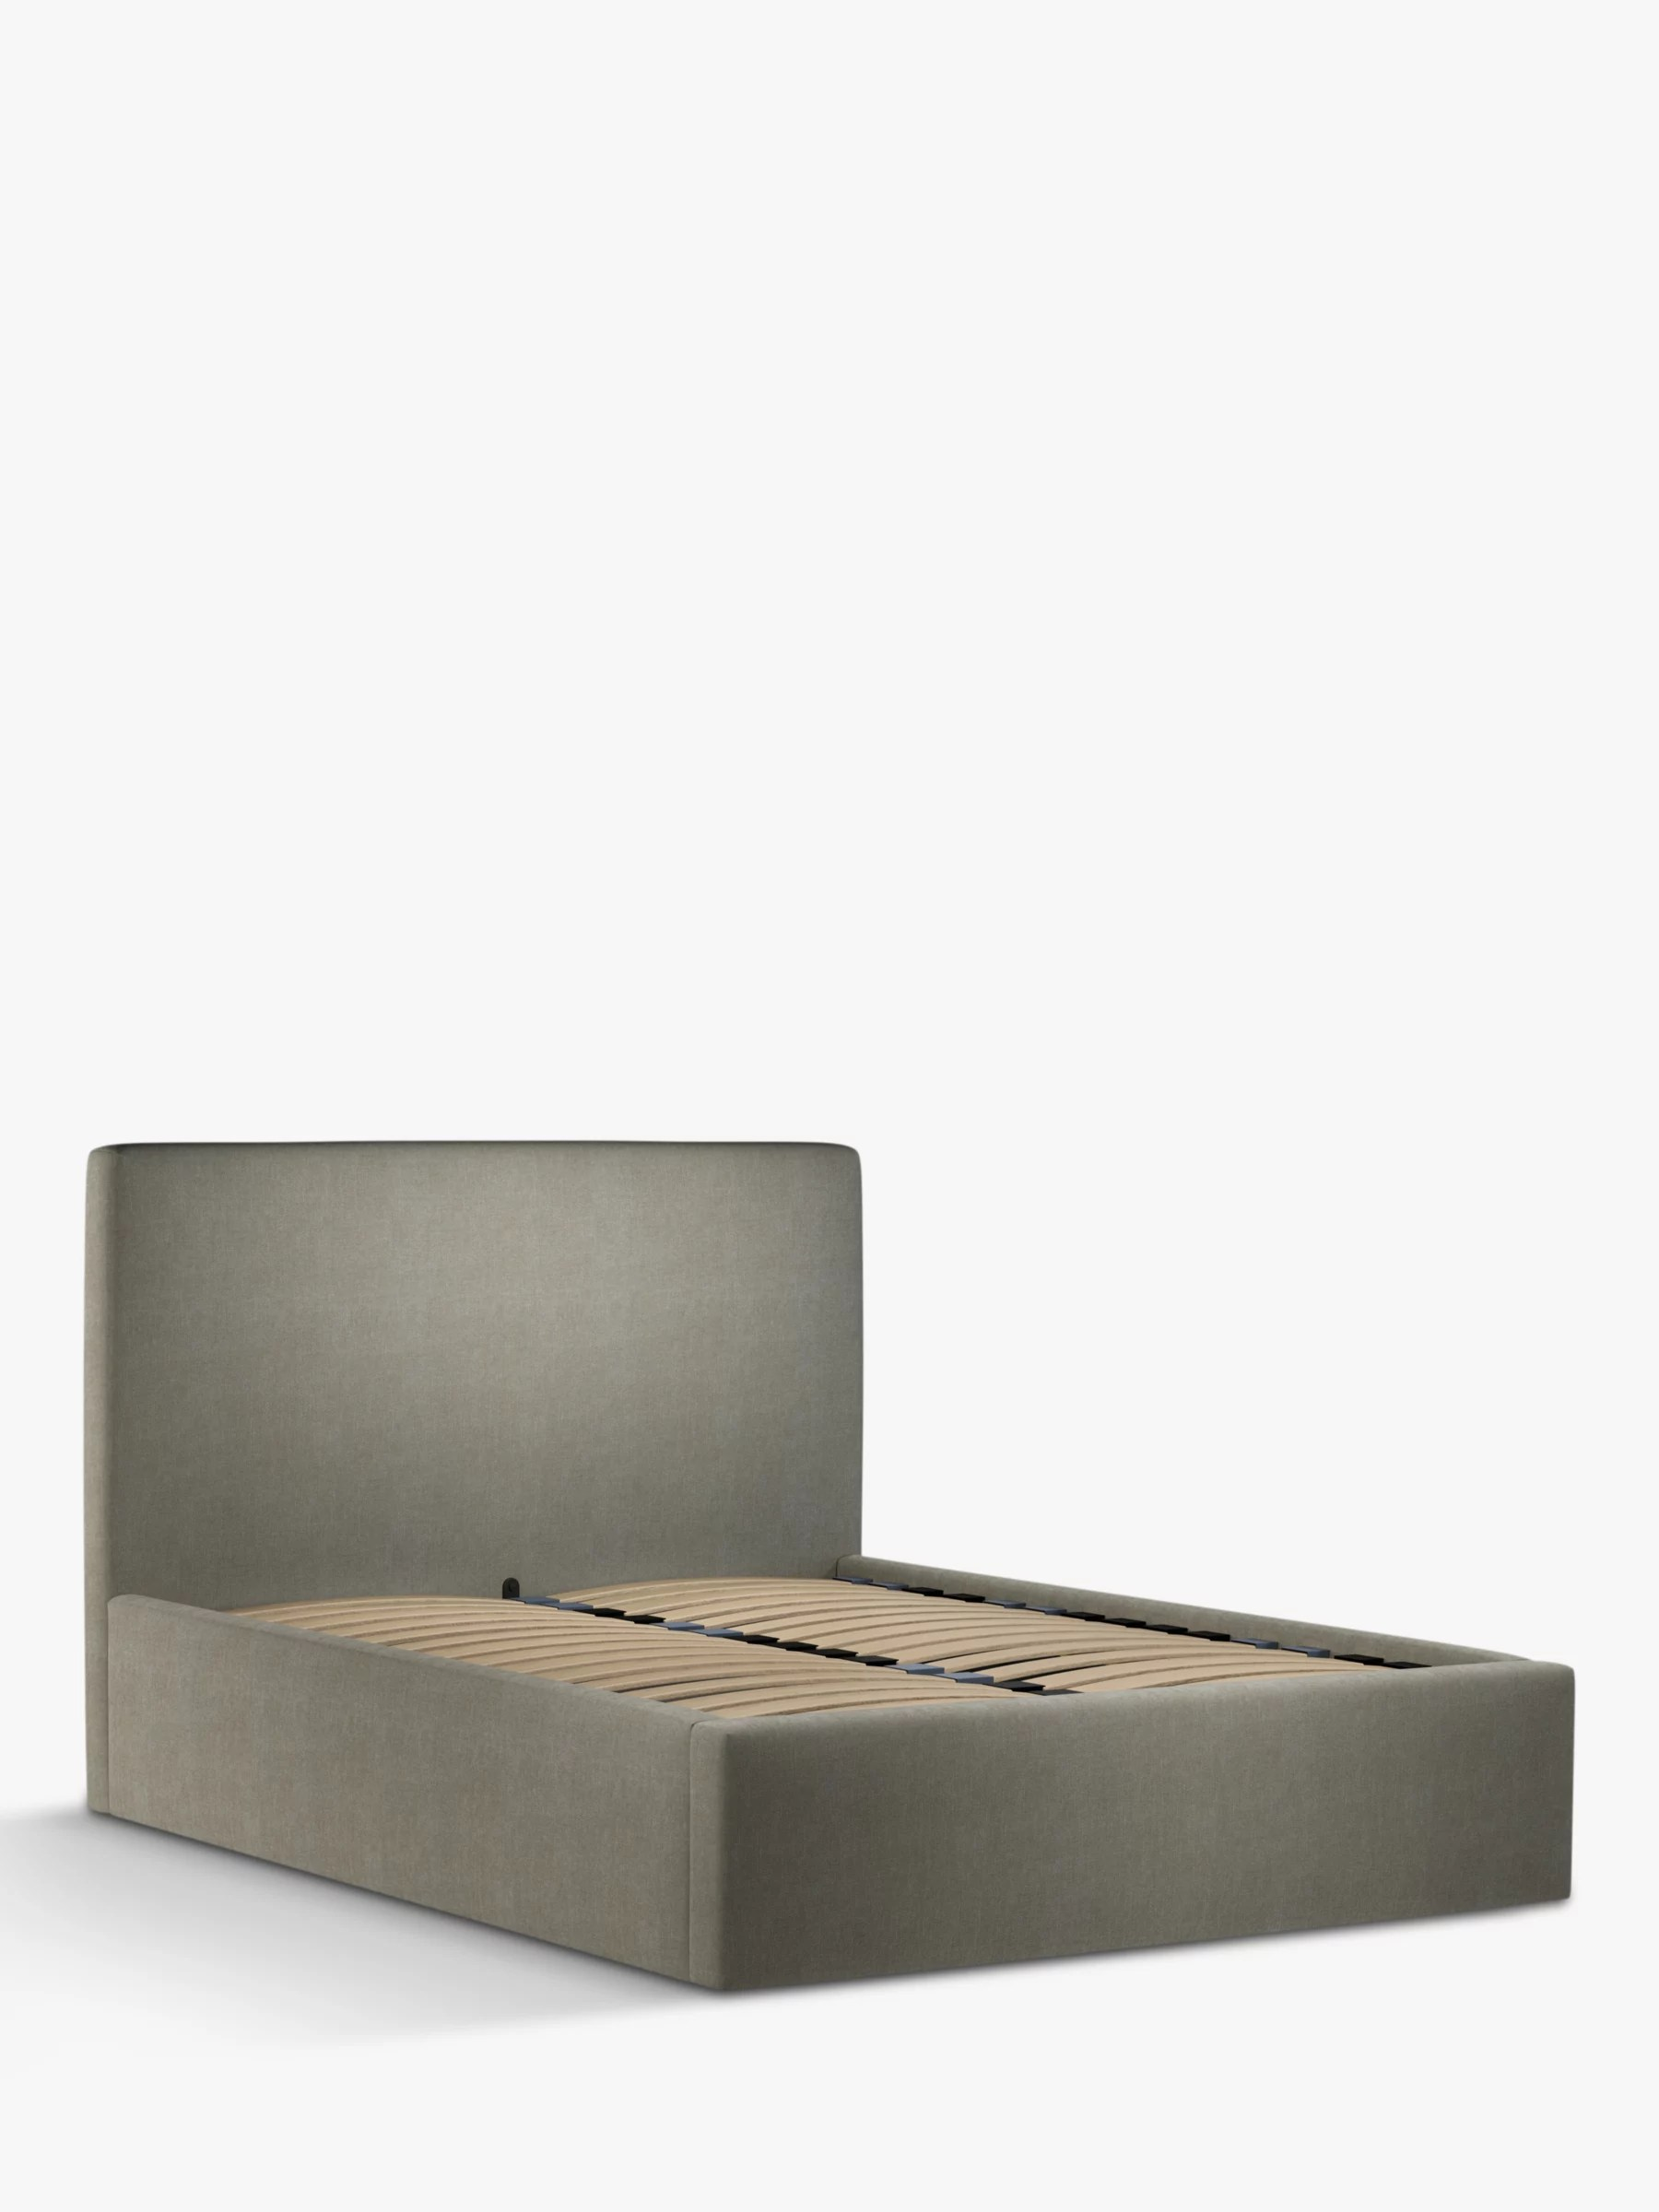 John Lewis Partners Emily Ottoman Storage Upholstered Bed Frame King Size At John Lewis Partners